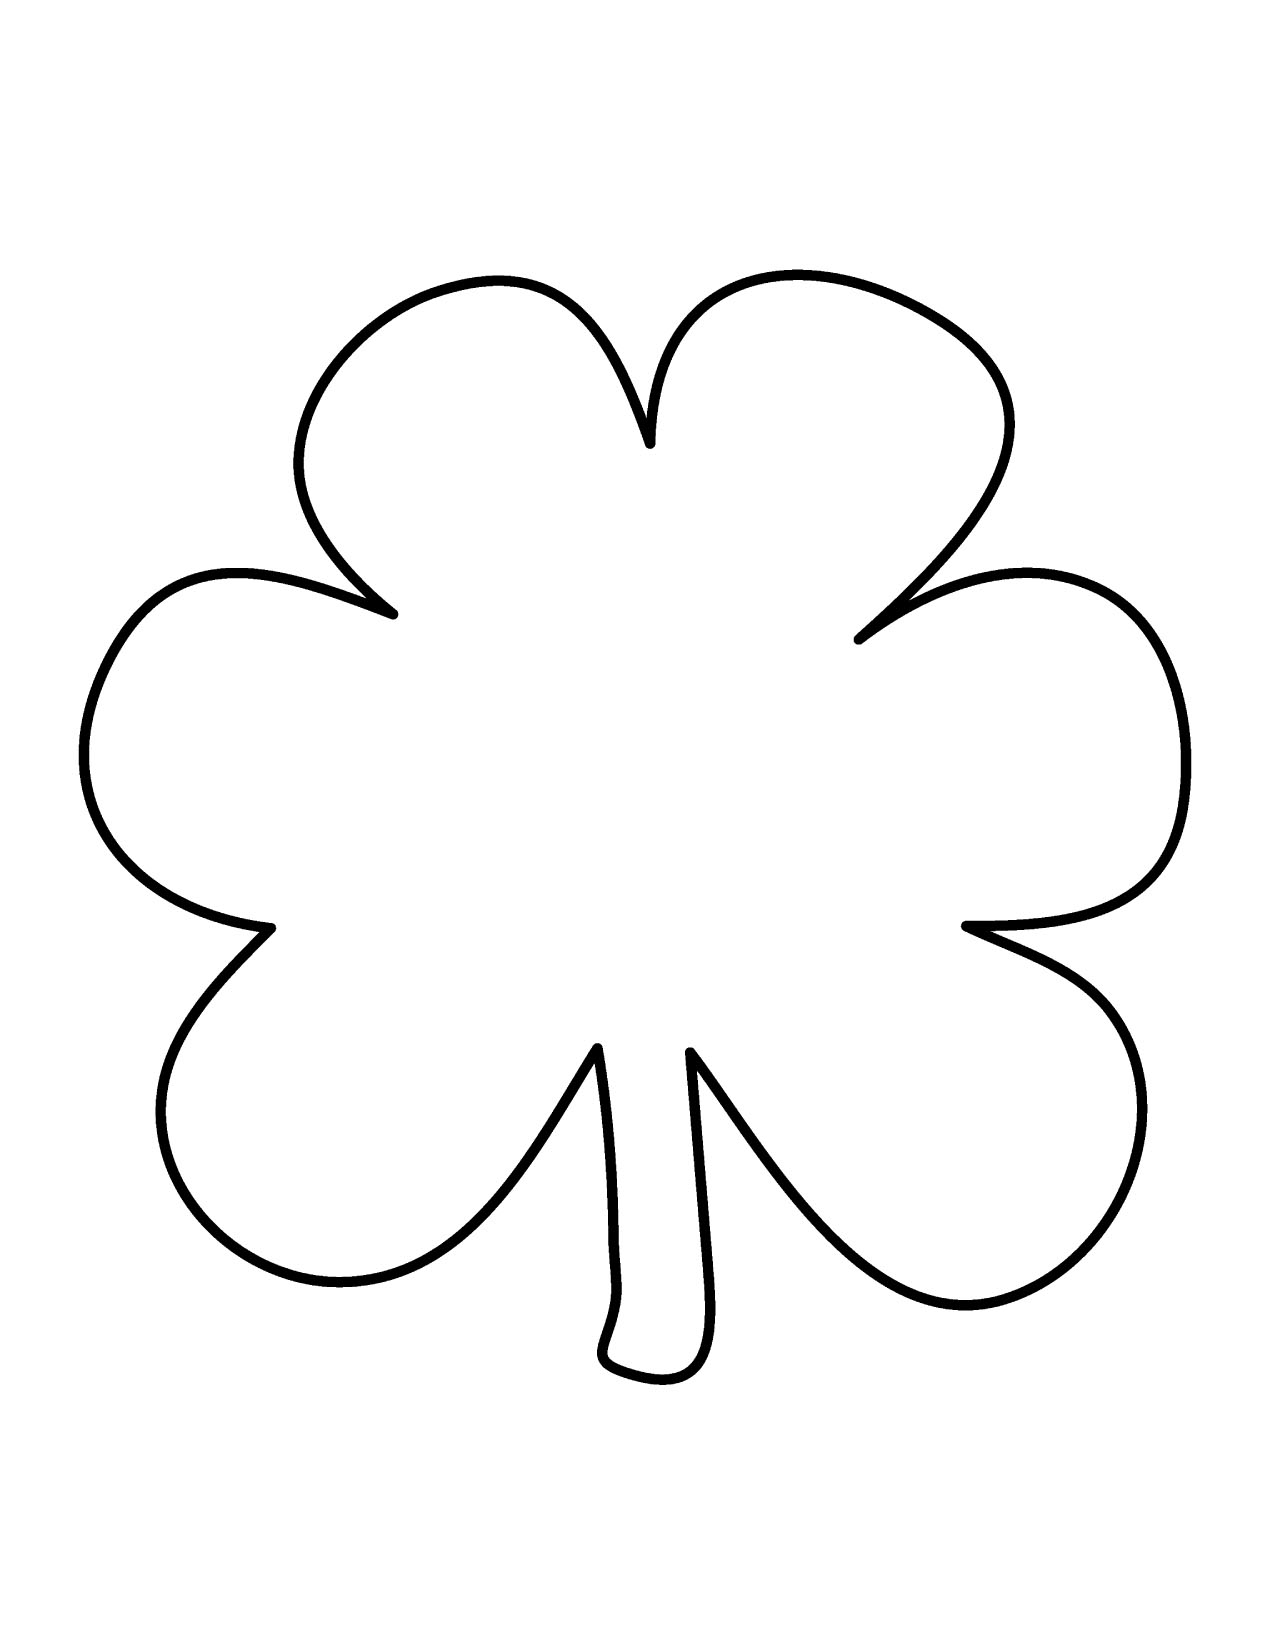 Clover Clipart Black And White